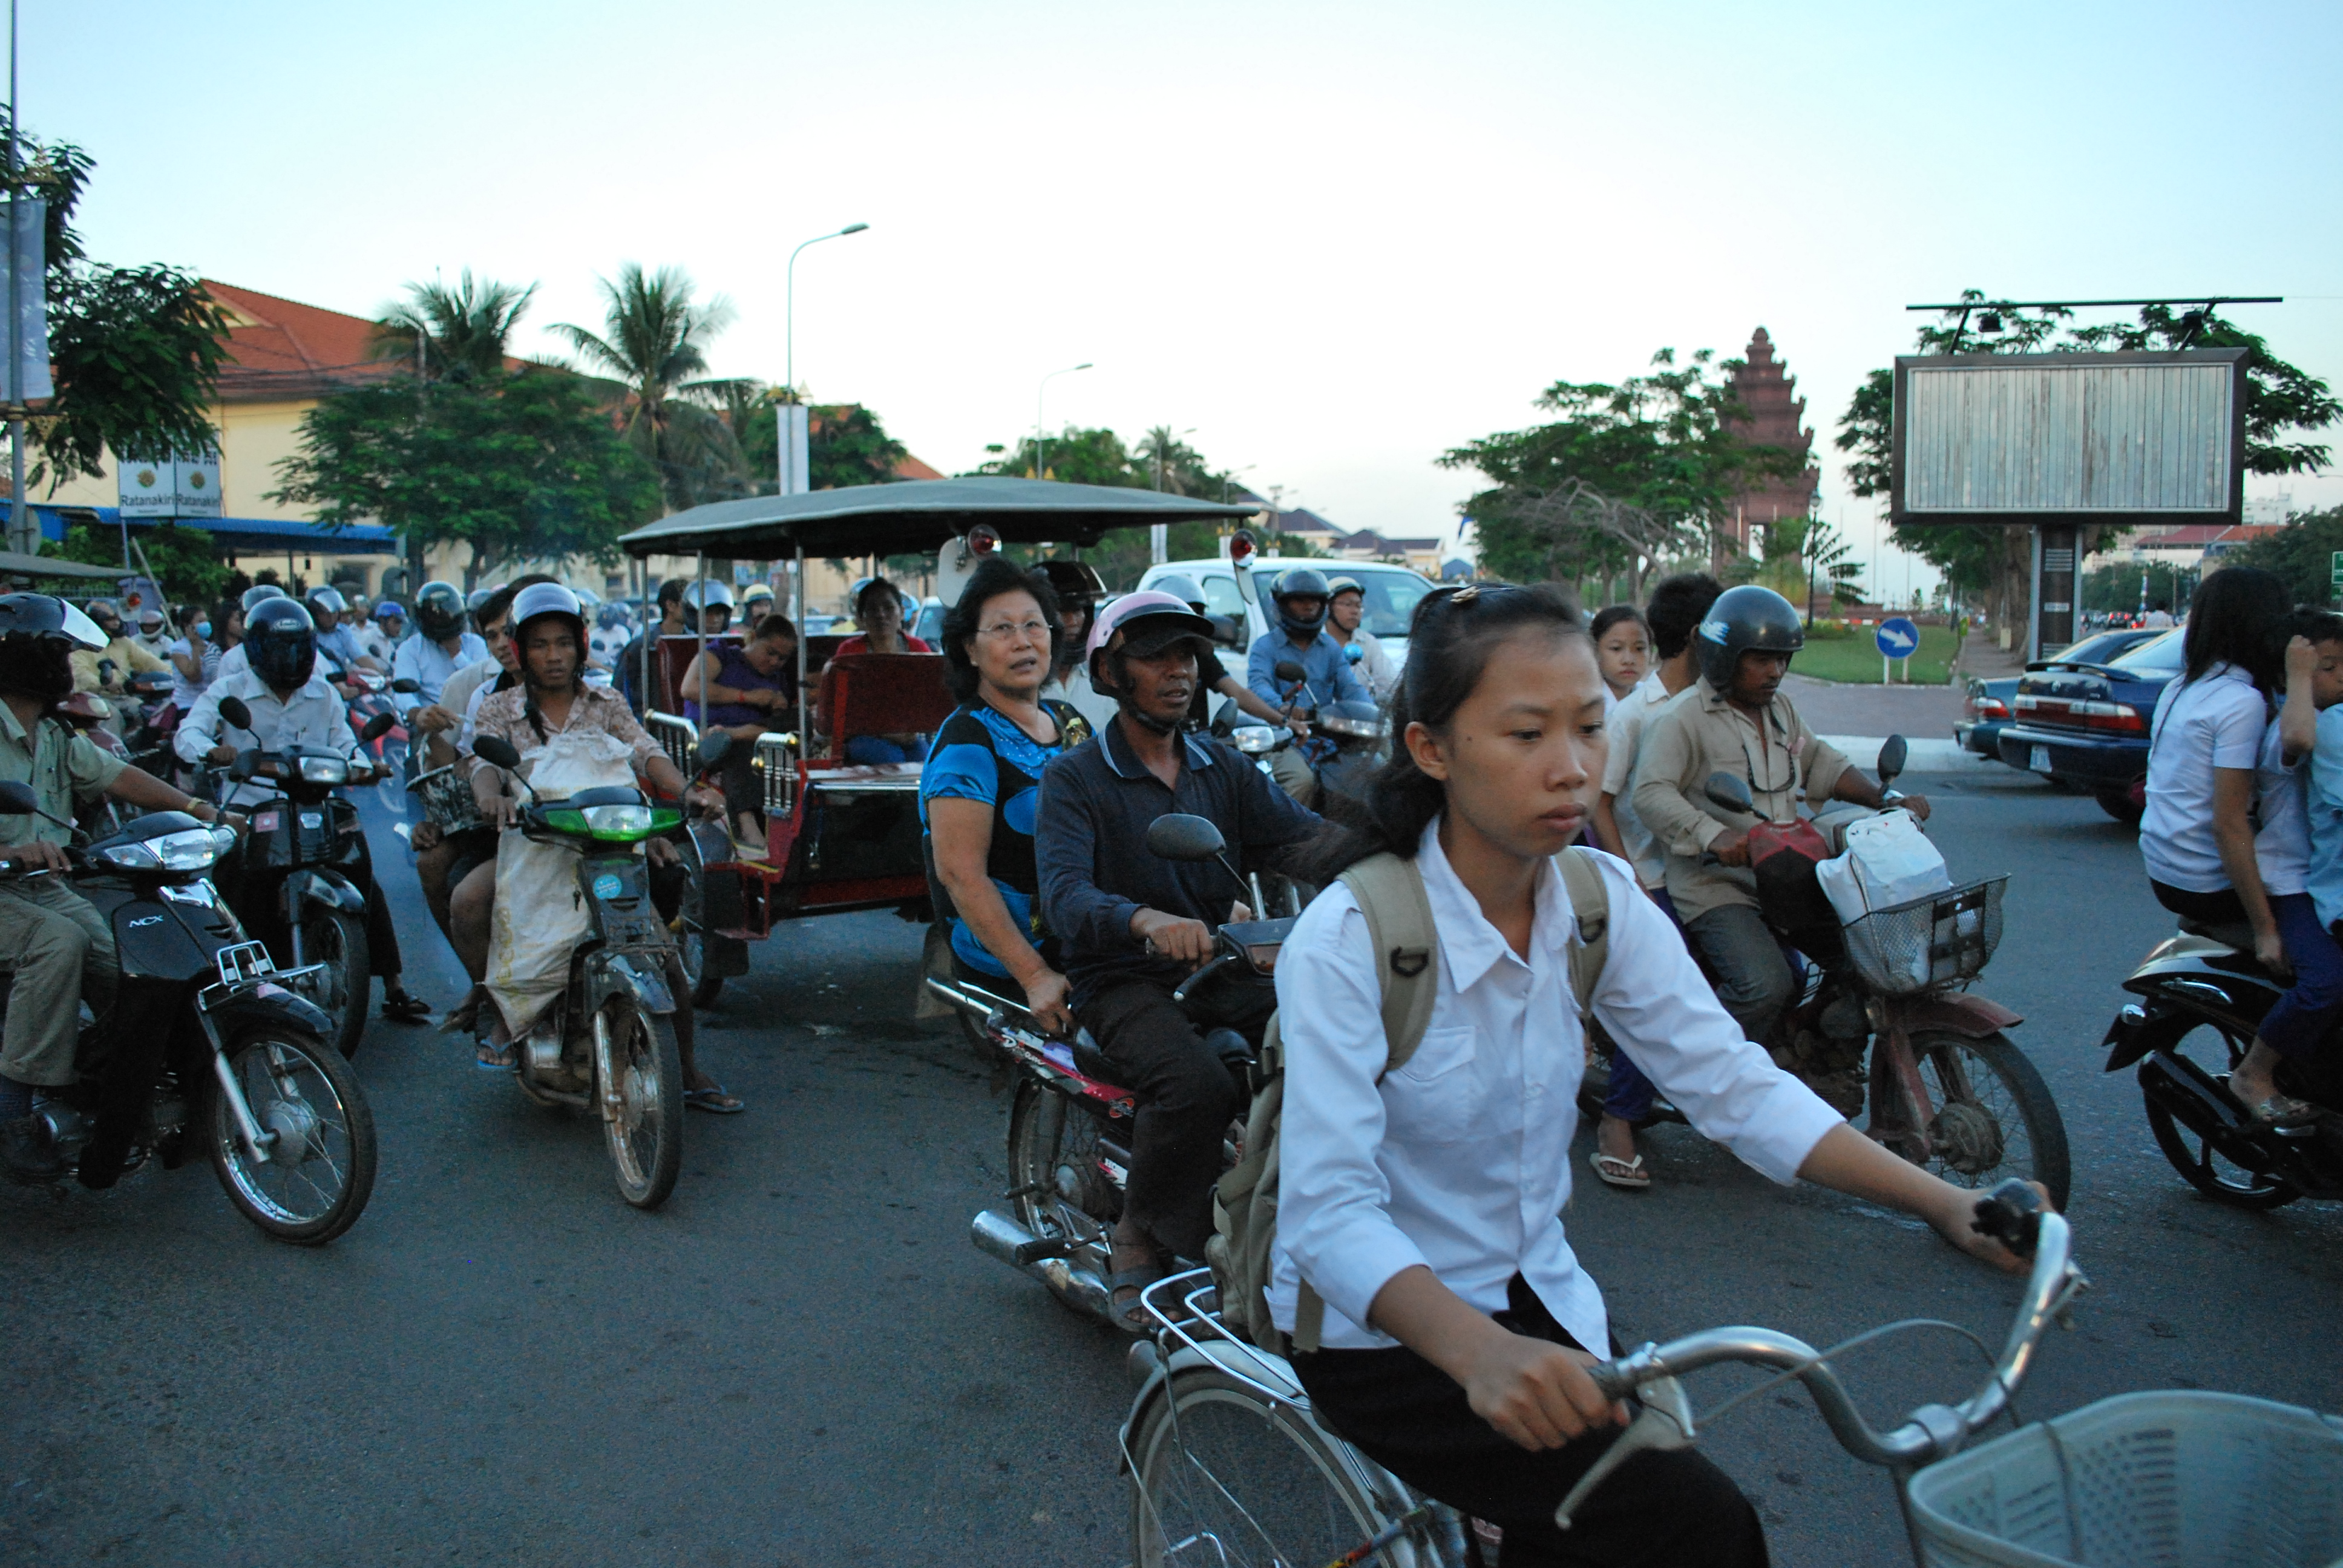 Traffic accidents are now a major public health concern in Cambodia, where 4.7 people die each day